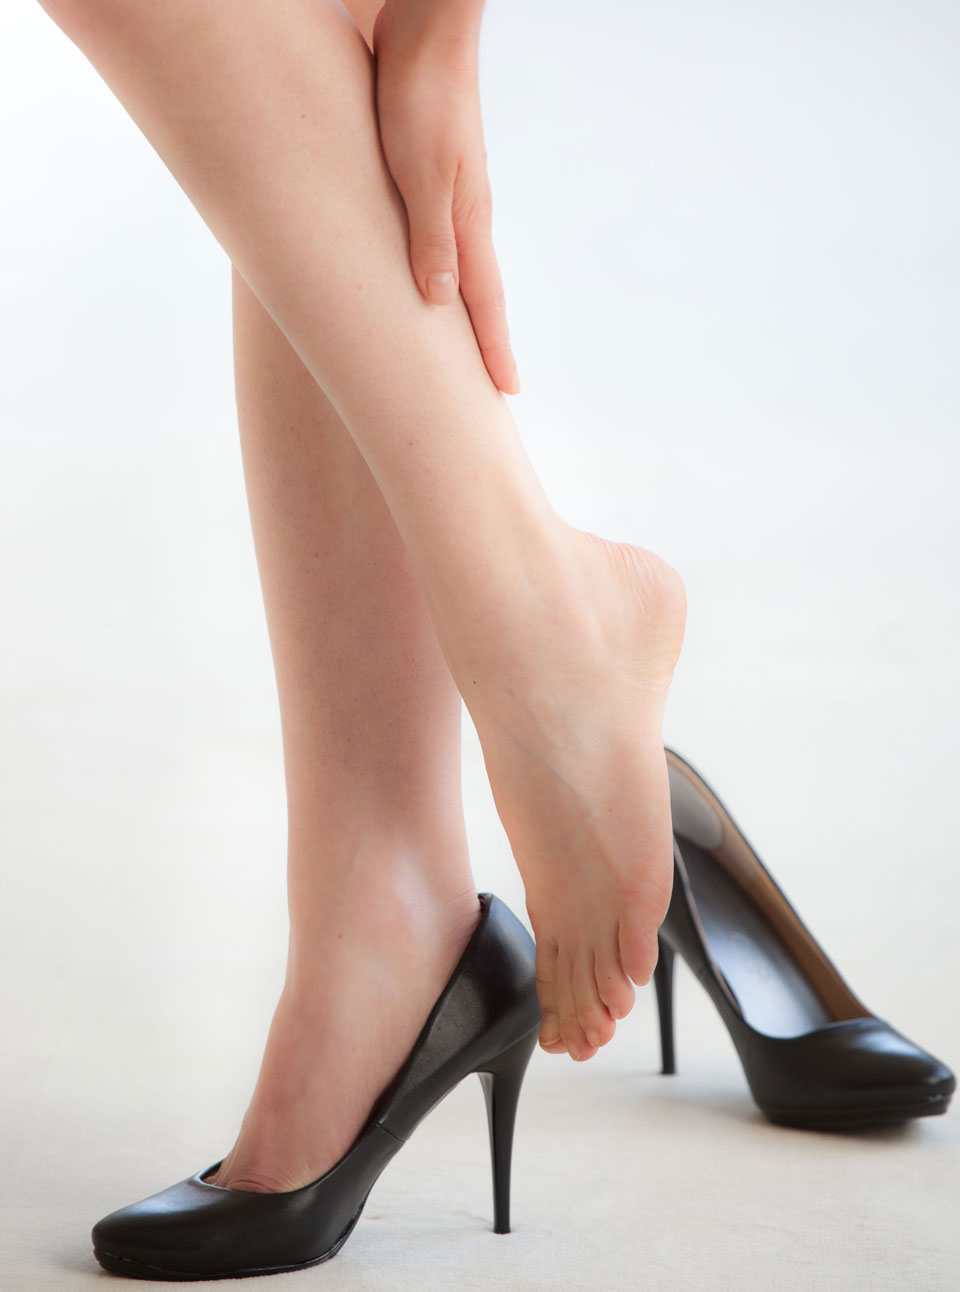 Communication on this topic: Are High Heels Causing You Foot Problems, are-high-heels-causing-you-foot-problems/